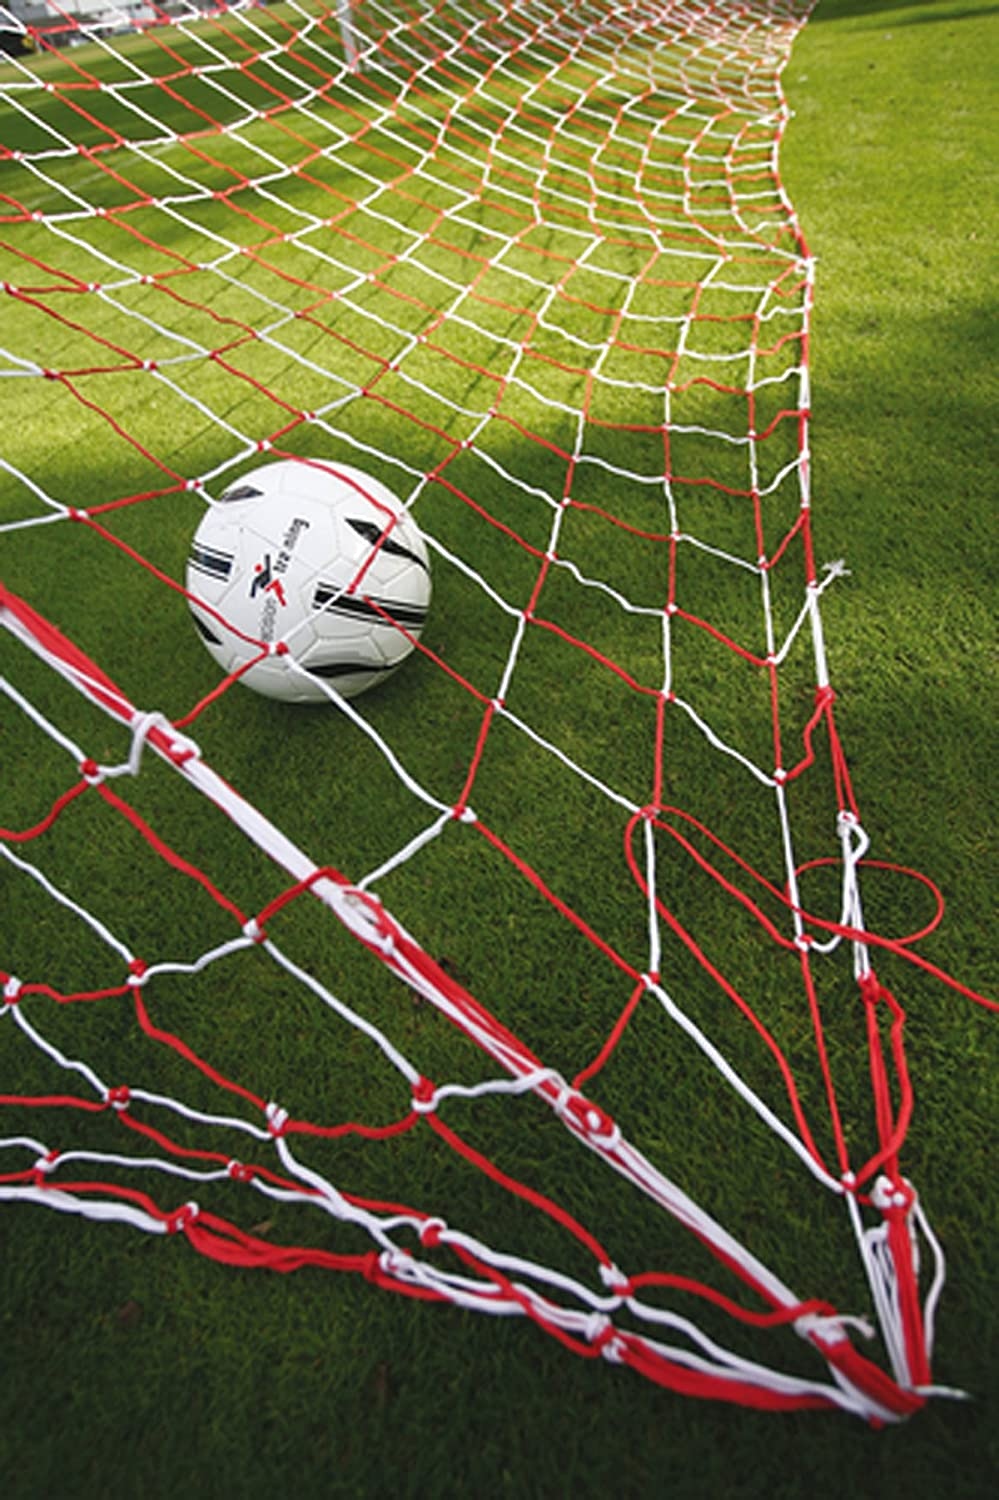 Precision Training Soccer Goalnets : 3.5mm Knotted Red-white